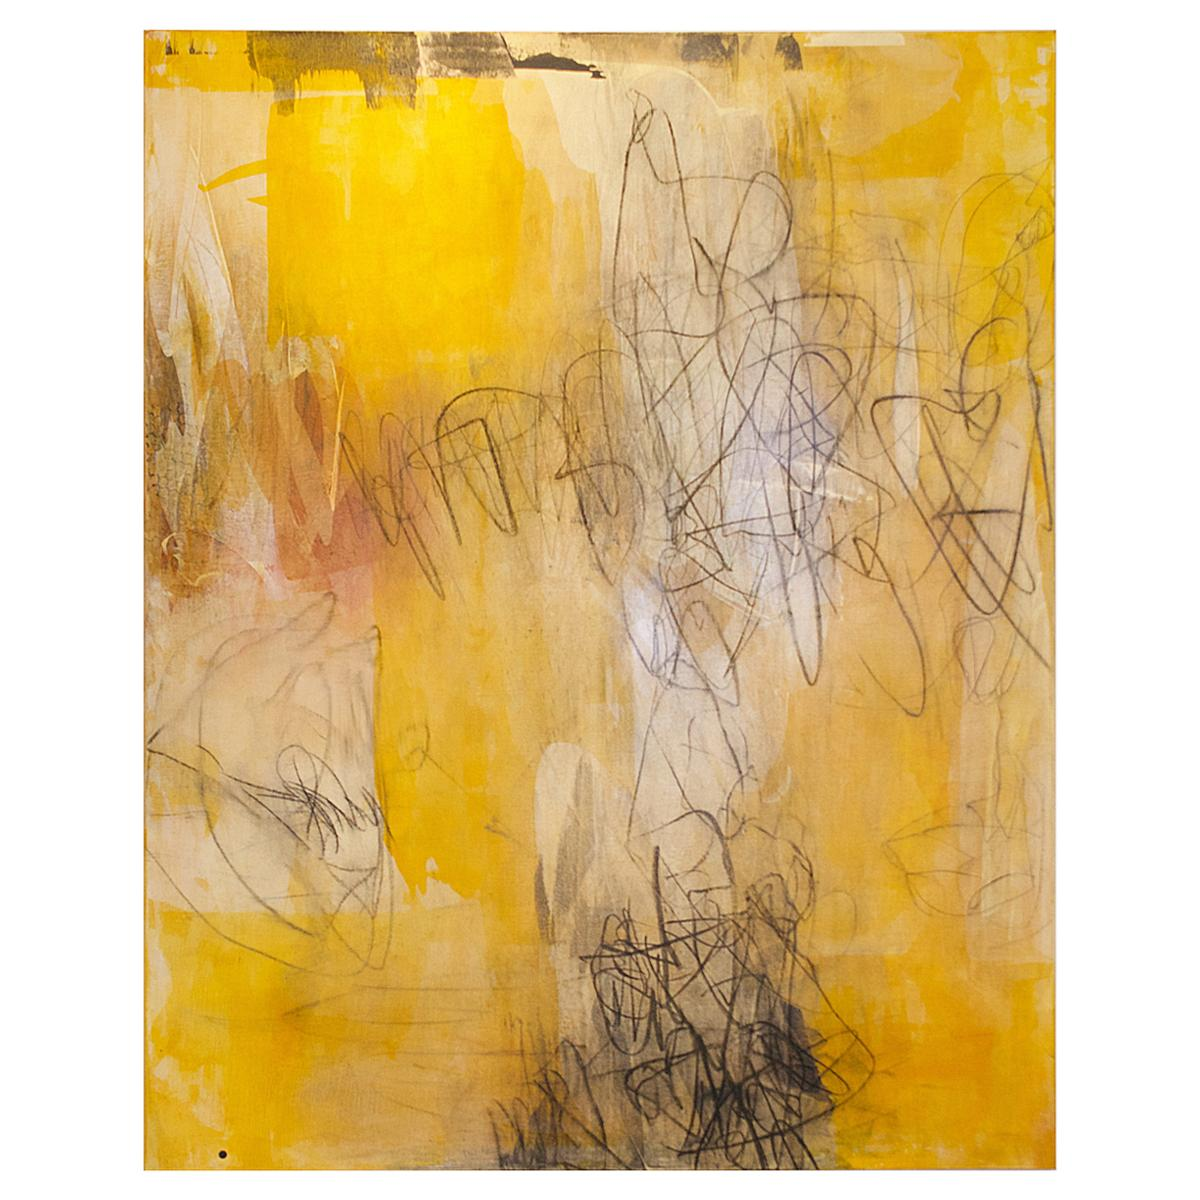 American Modern Abstract Expressionist Mixed Media on Board, Elliot Twelvetrees